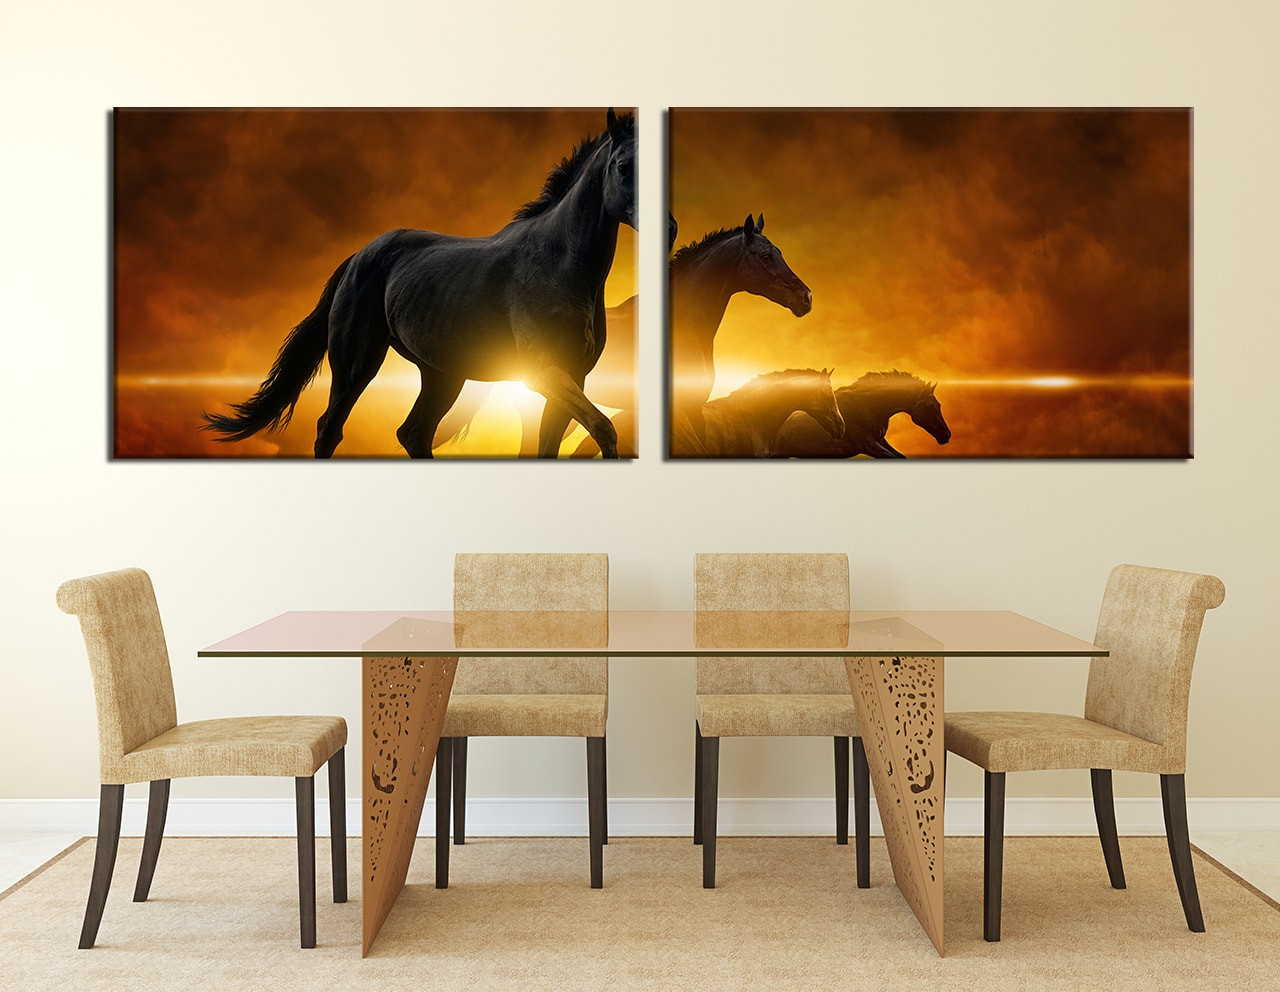 2 piece wall decor black horse large pictures wildlife canvas dining room wall decor 2 piece wall art animal multi panel art horse amipublicfo Image collections